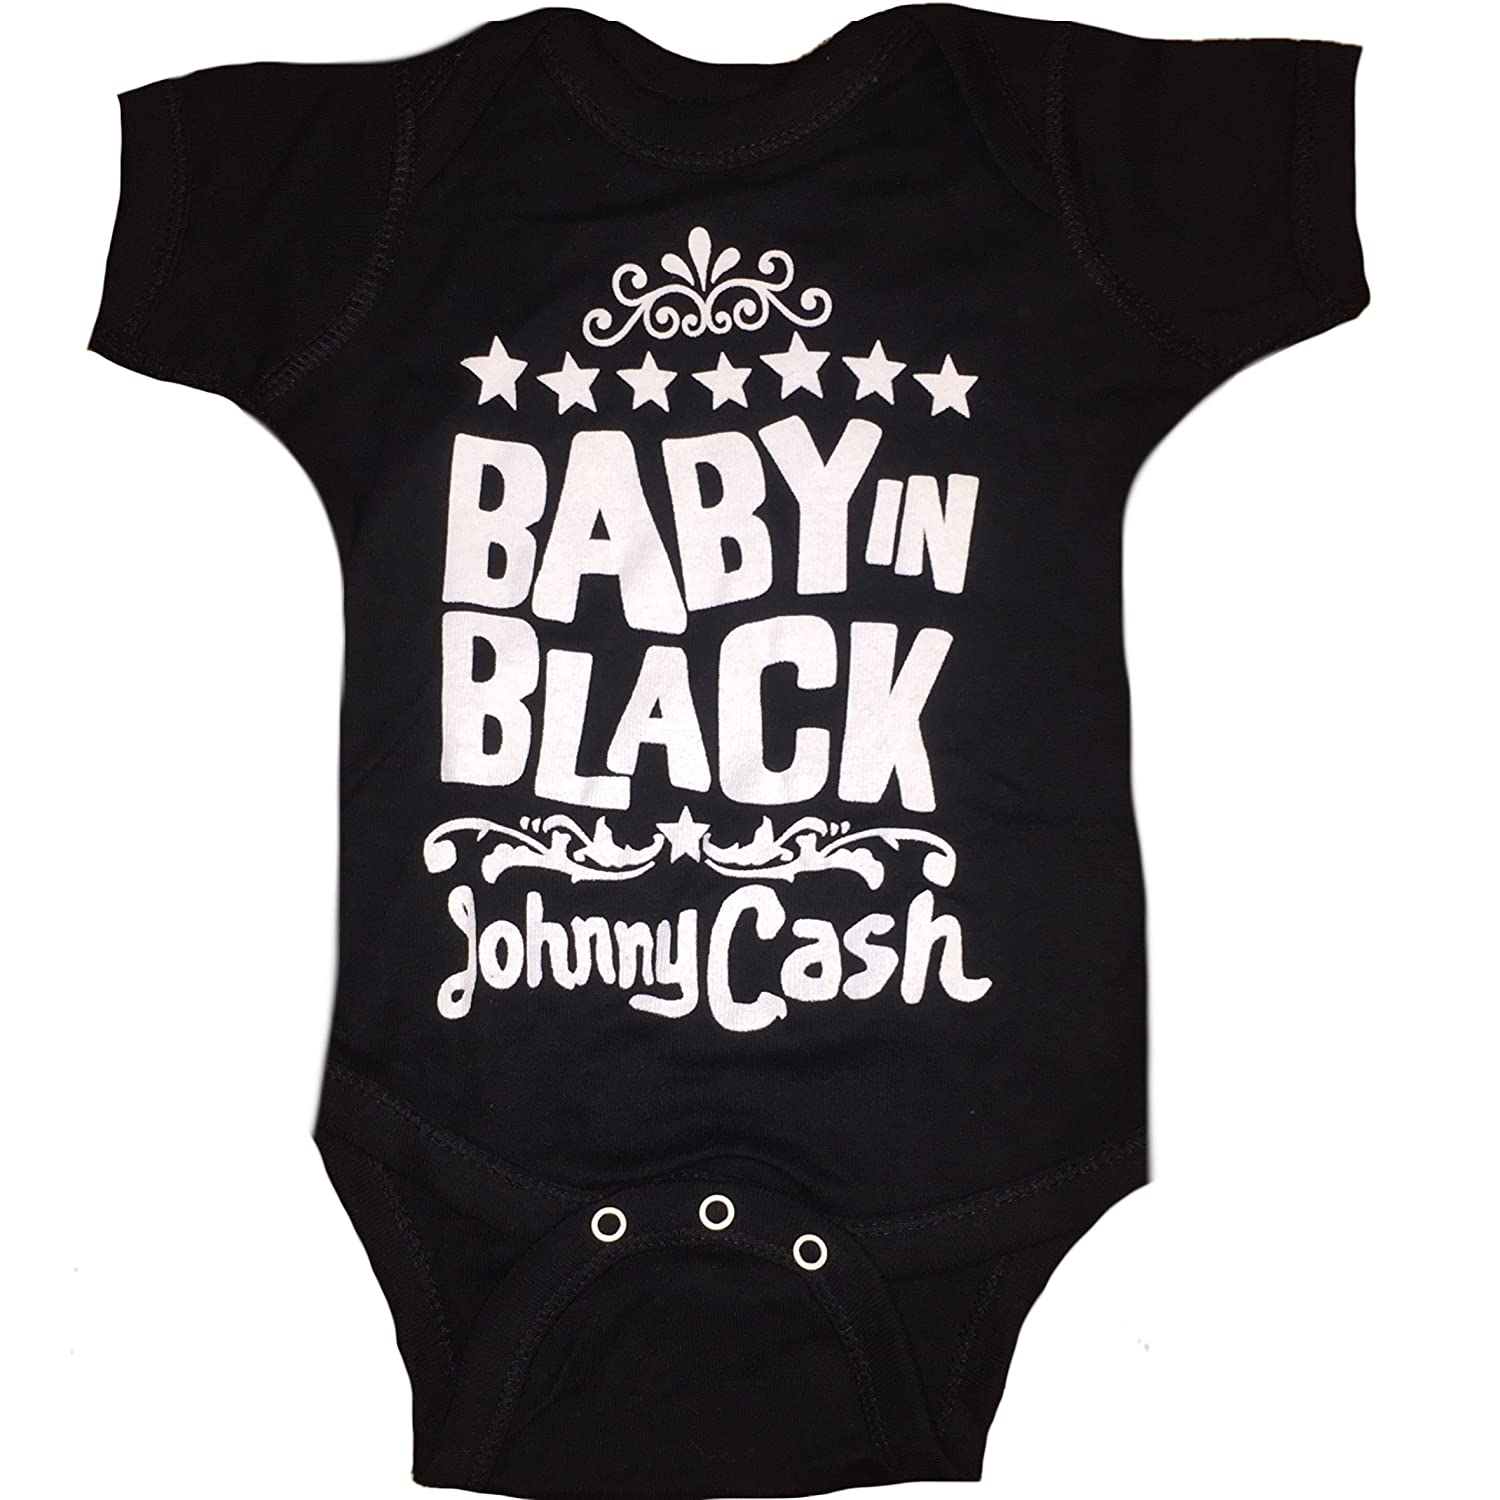 Amazon.com  Johnny Cash Baby In Black Unisex Baby Infant Romper  Clothing 0a2919fc9706